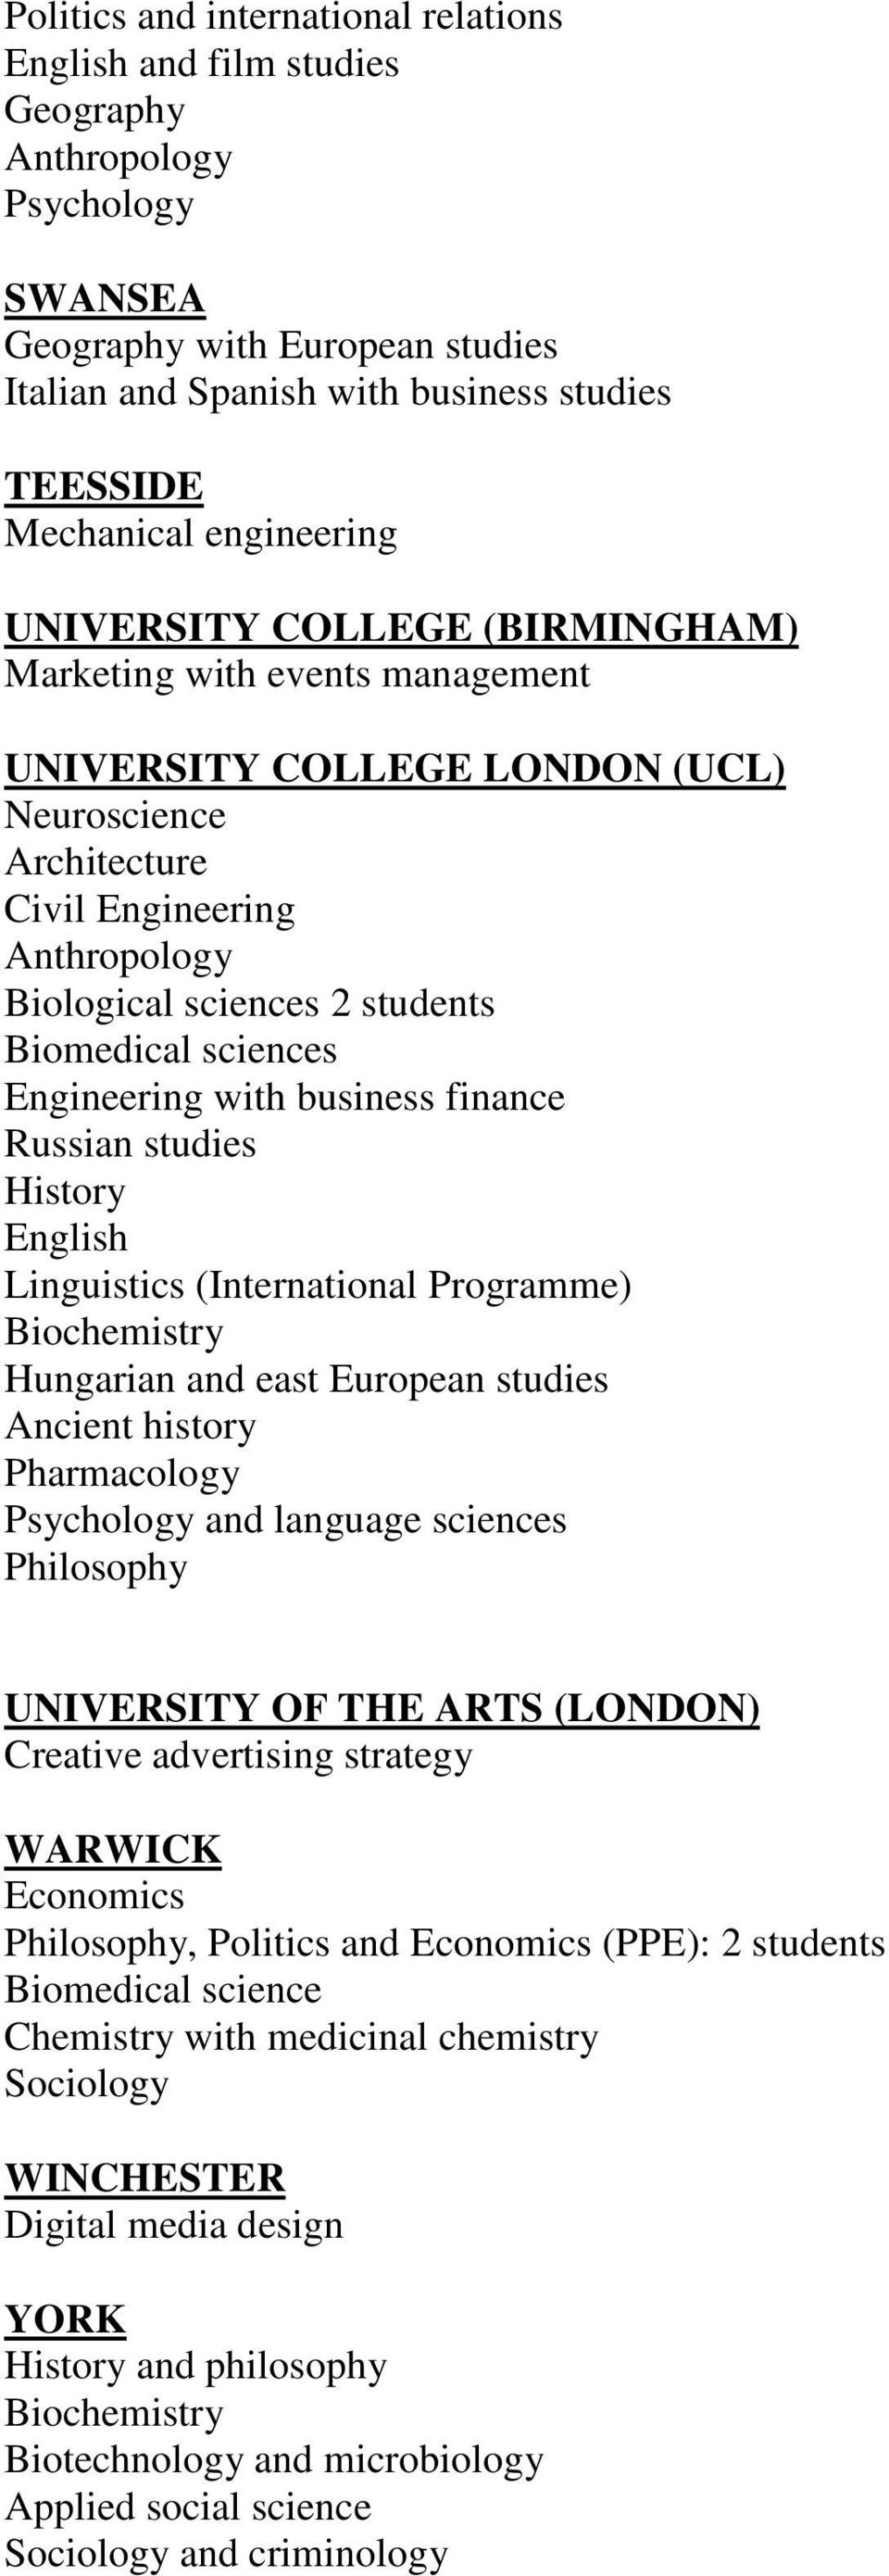 with business finance Russian studies History English Linguistics (International Programme) Biochemistry Hungarian and east European studies Ancient history Pharmacology and language sciences